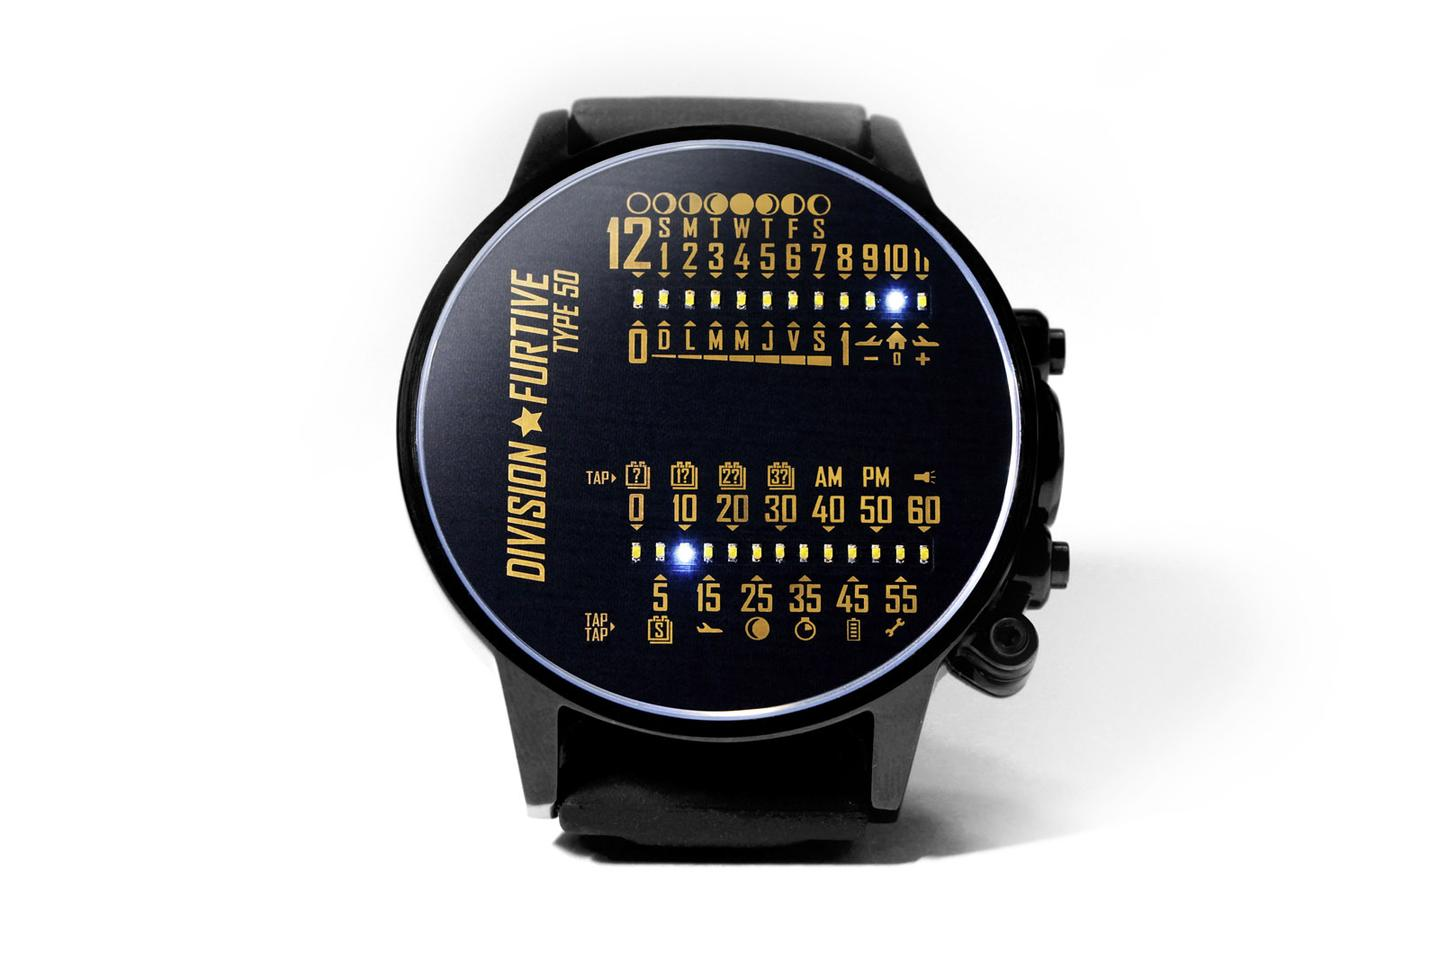 The front face of the Type 50 displays the time via two banks of white LEDs